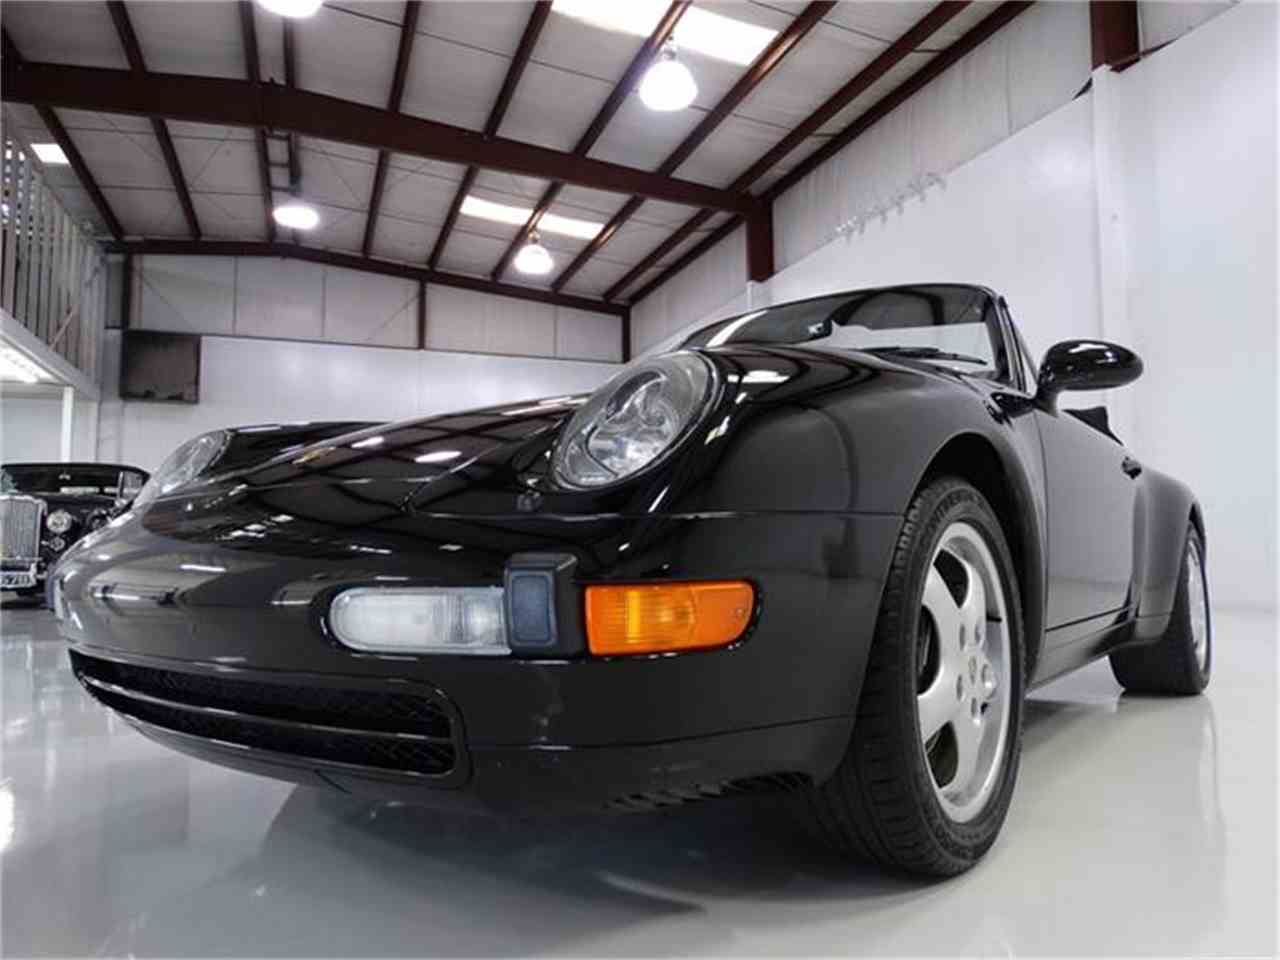 Large Picture of 1998 Porsche 911 Carrera located in St. Louis Missouri - $69,900.00 Offered by Daniel Schmitt & Co. - GMT3